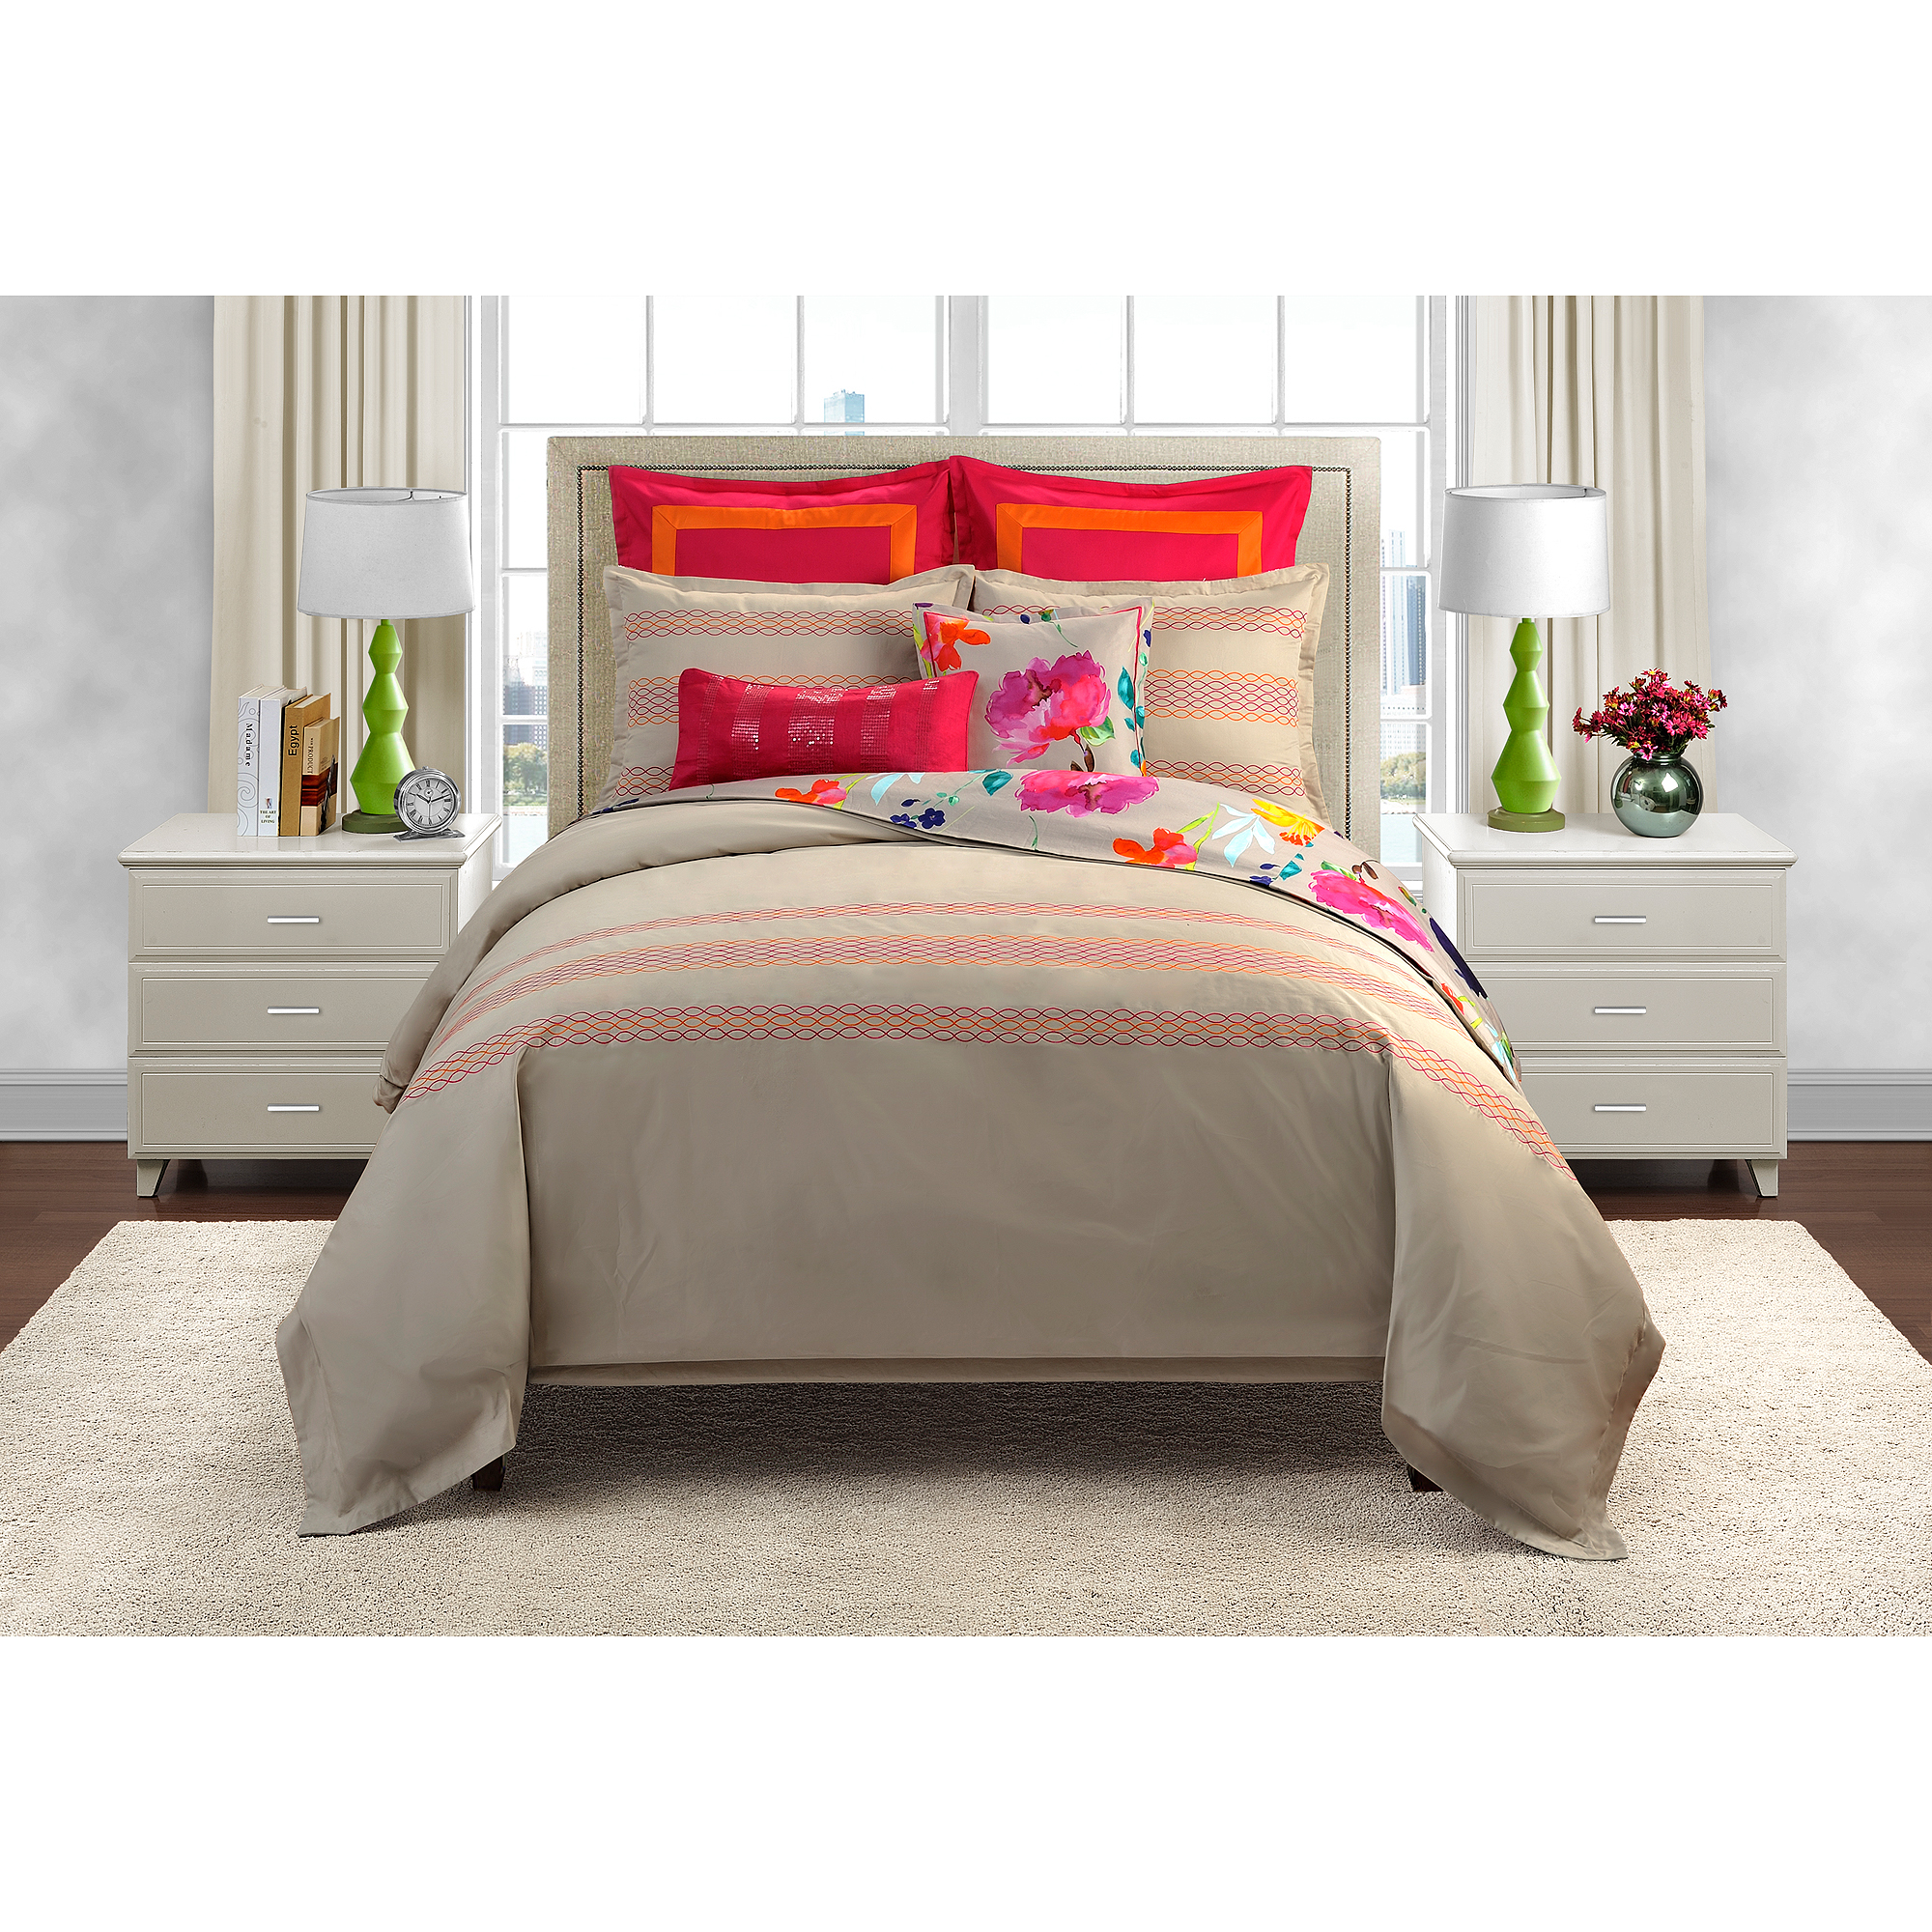 Cloud Co. Merritt Comforter Mini Bedding Set